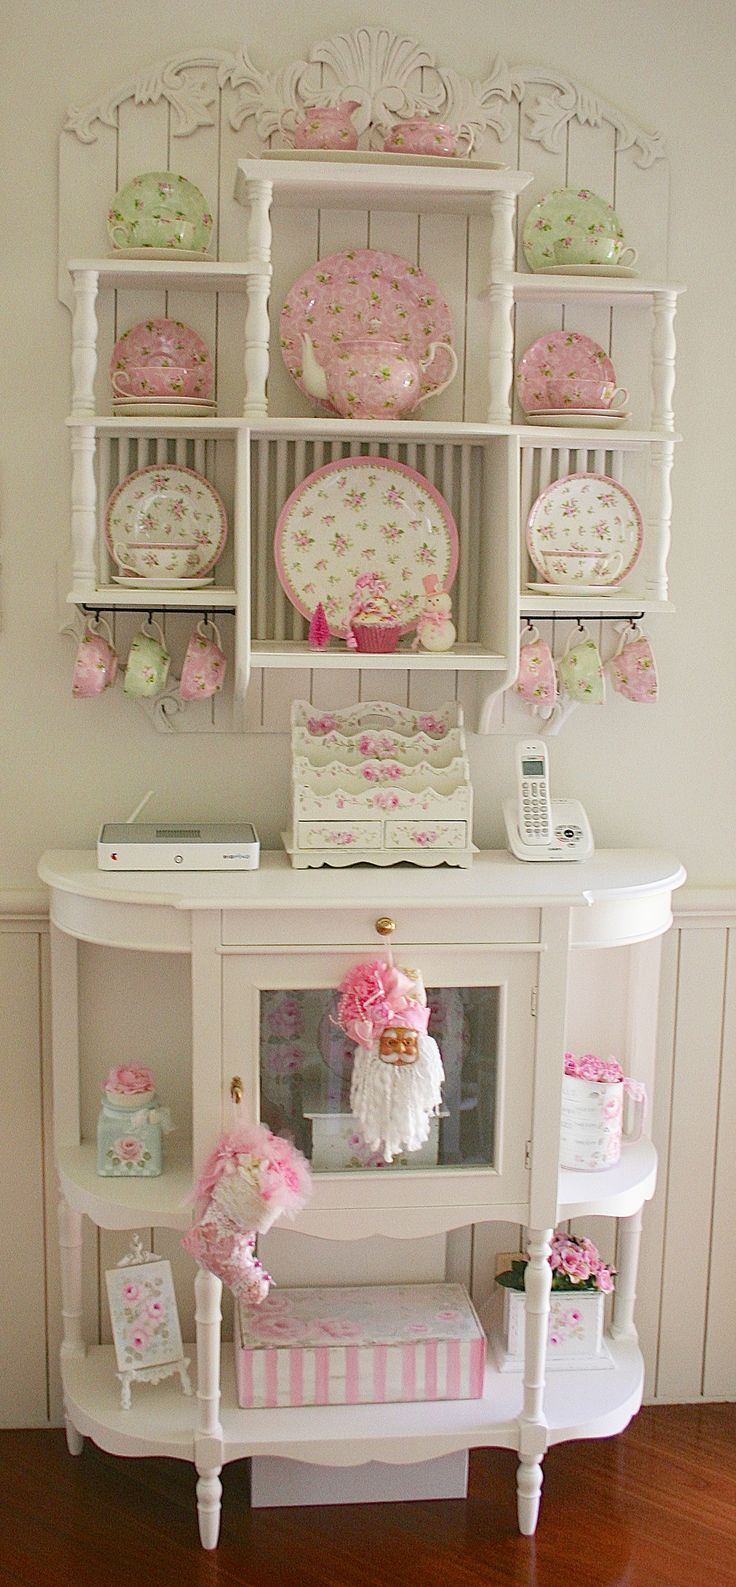 Pink Shabby Chic Dresser: 1621 Best Images About Shabby Chic & Vintage On Pinterest